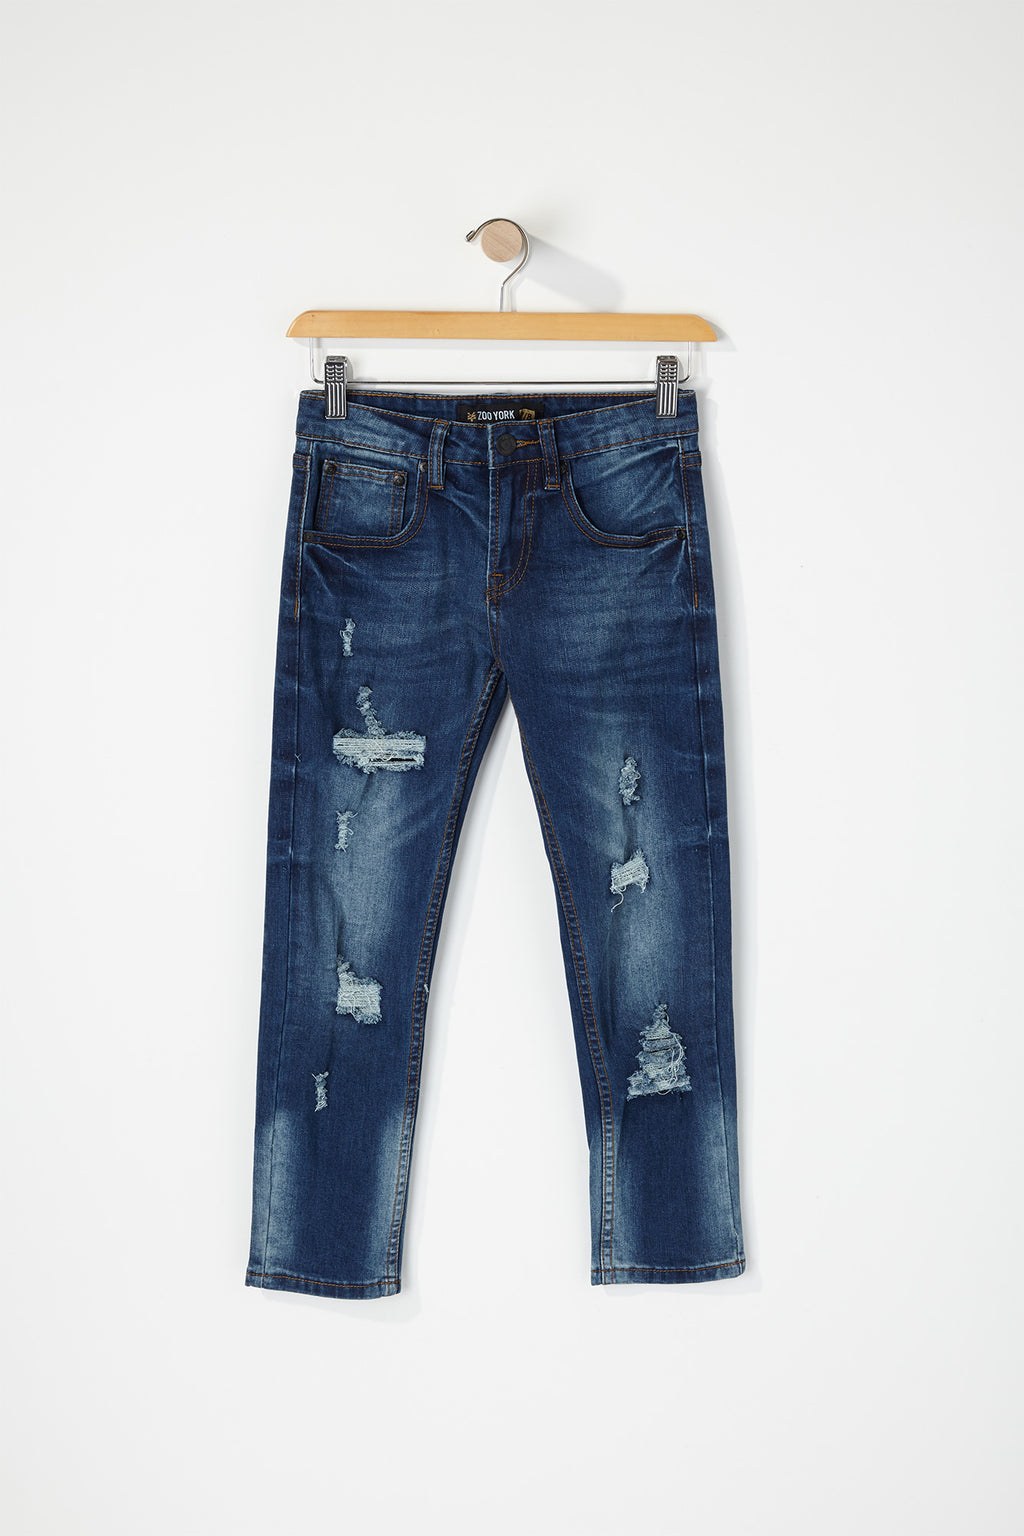 Zoo York Boys Distressed Skinny Jeans